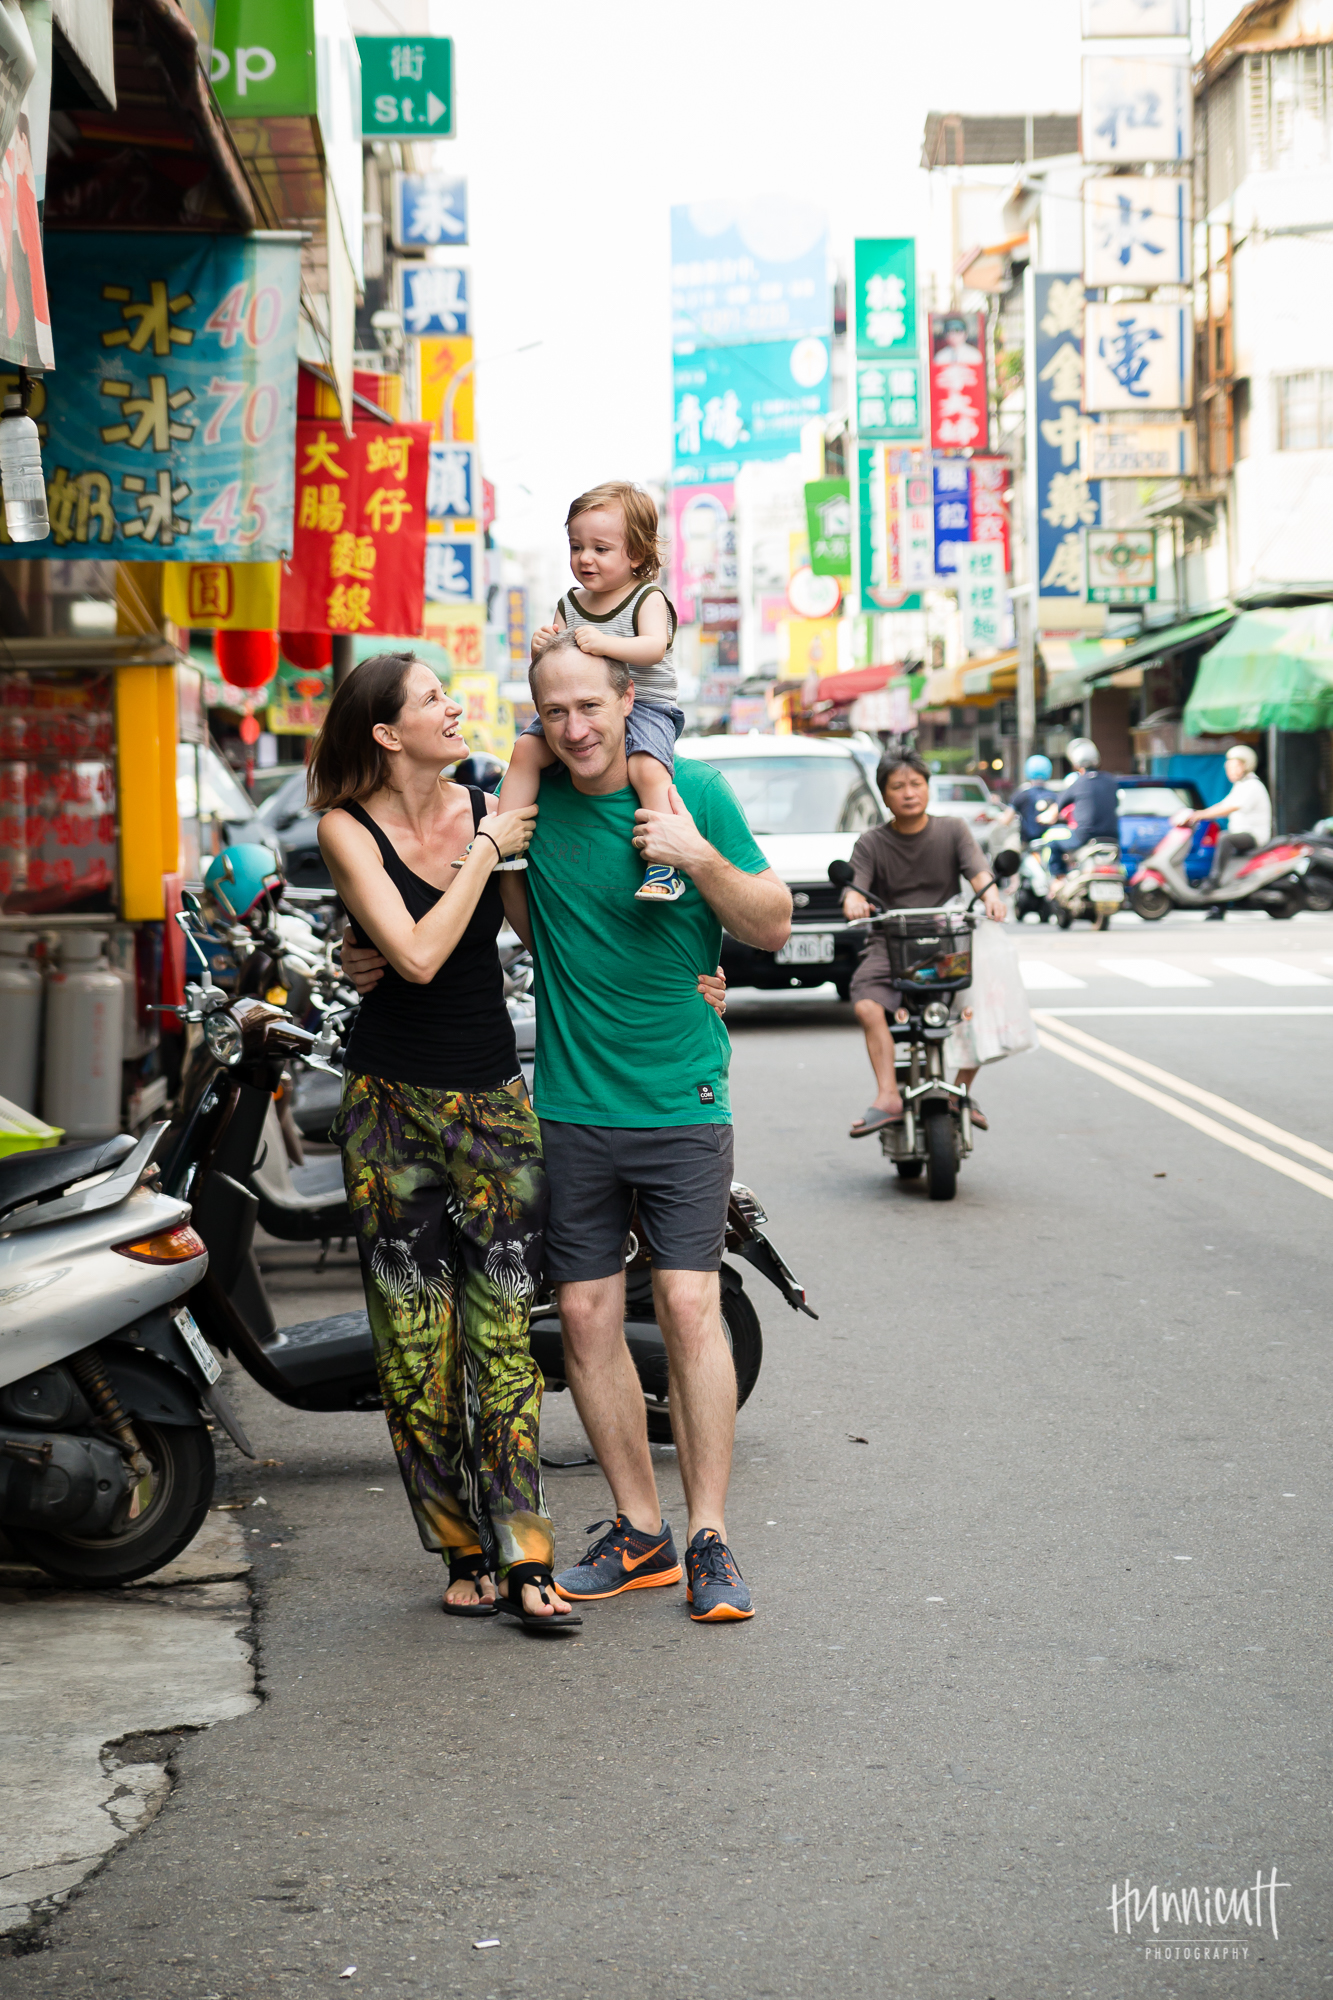 Hunnicutt_Photography_Taichung_Urban_Lifestyle_Family_Photography-12